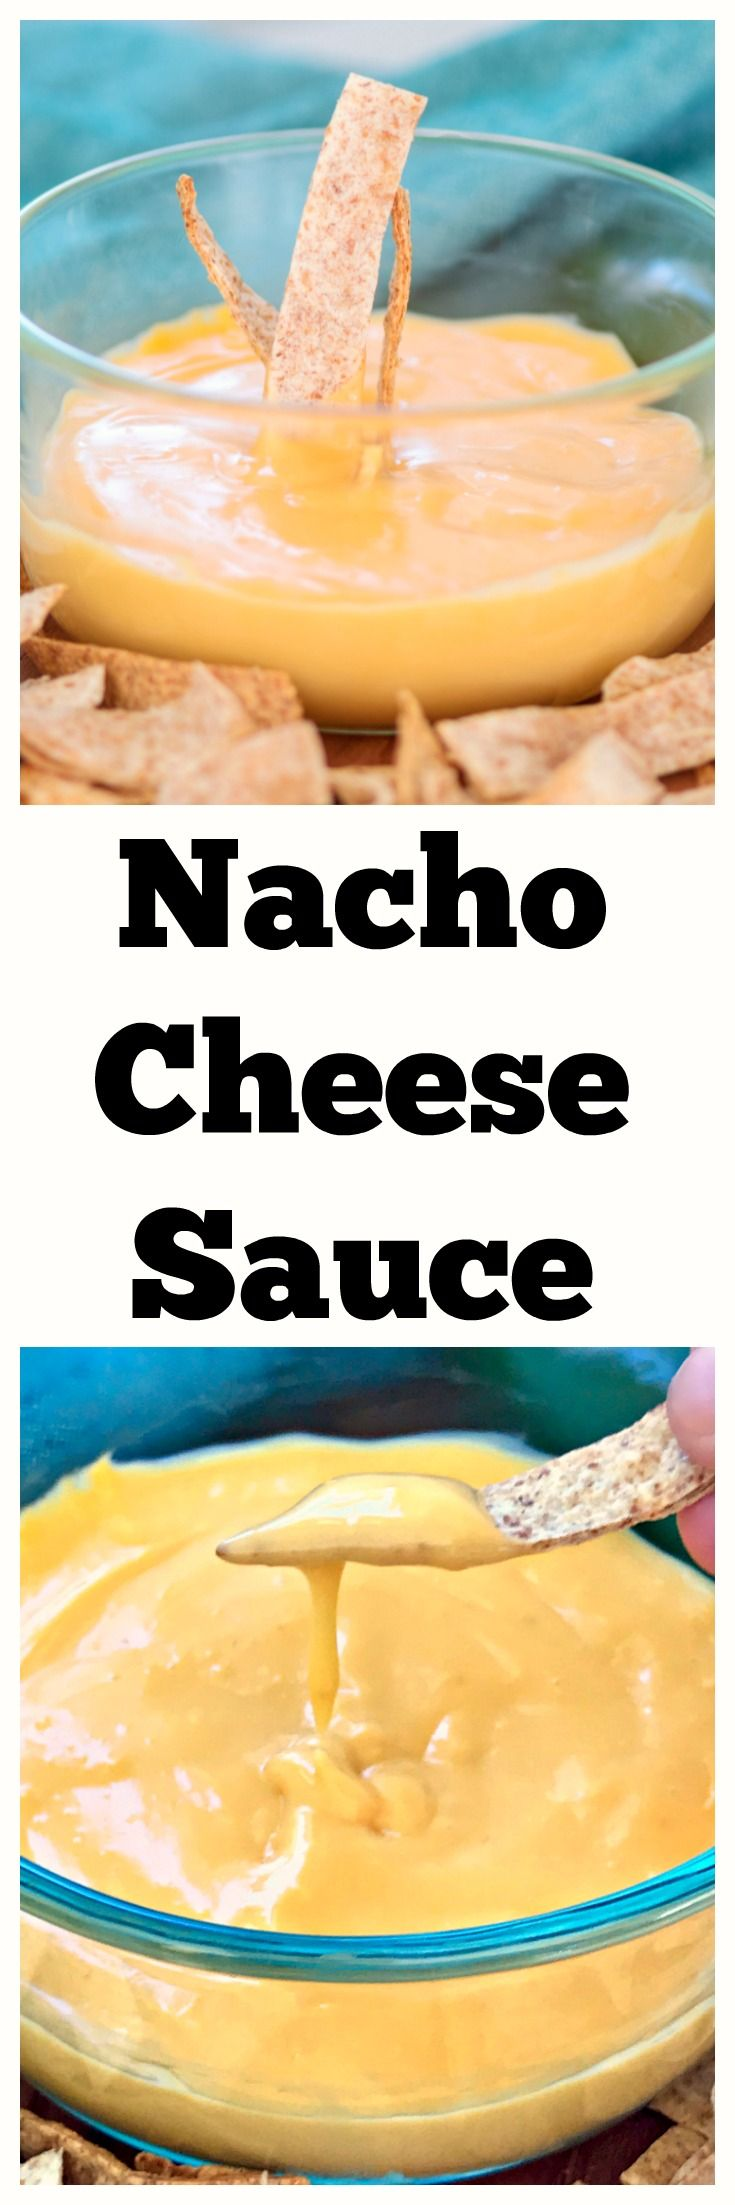 Homemade Nacho Cheese Sauce - No boxed orange goop here! #nachos #realcheese #cheese #queso #appetizer #dip #footballfood